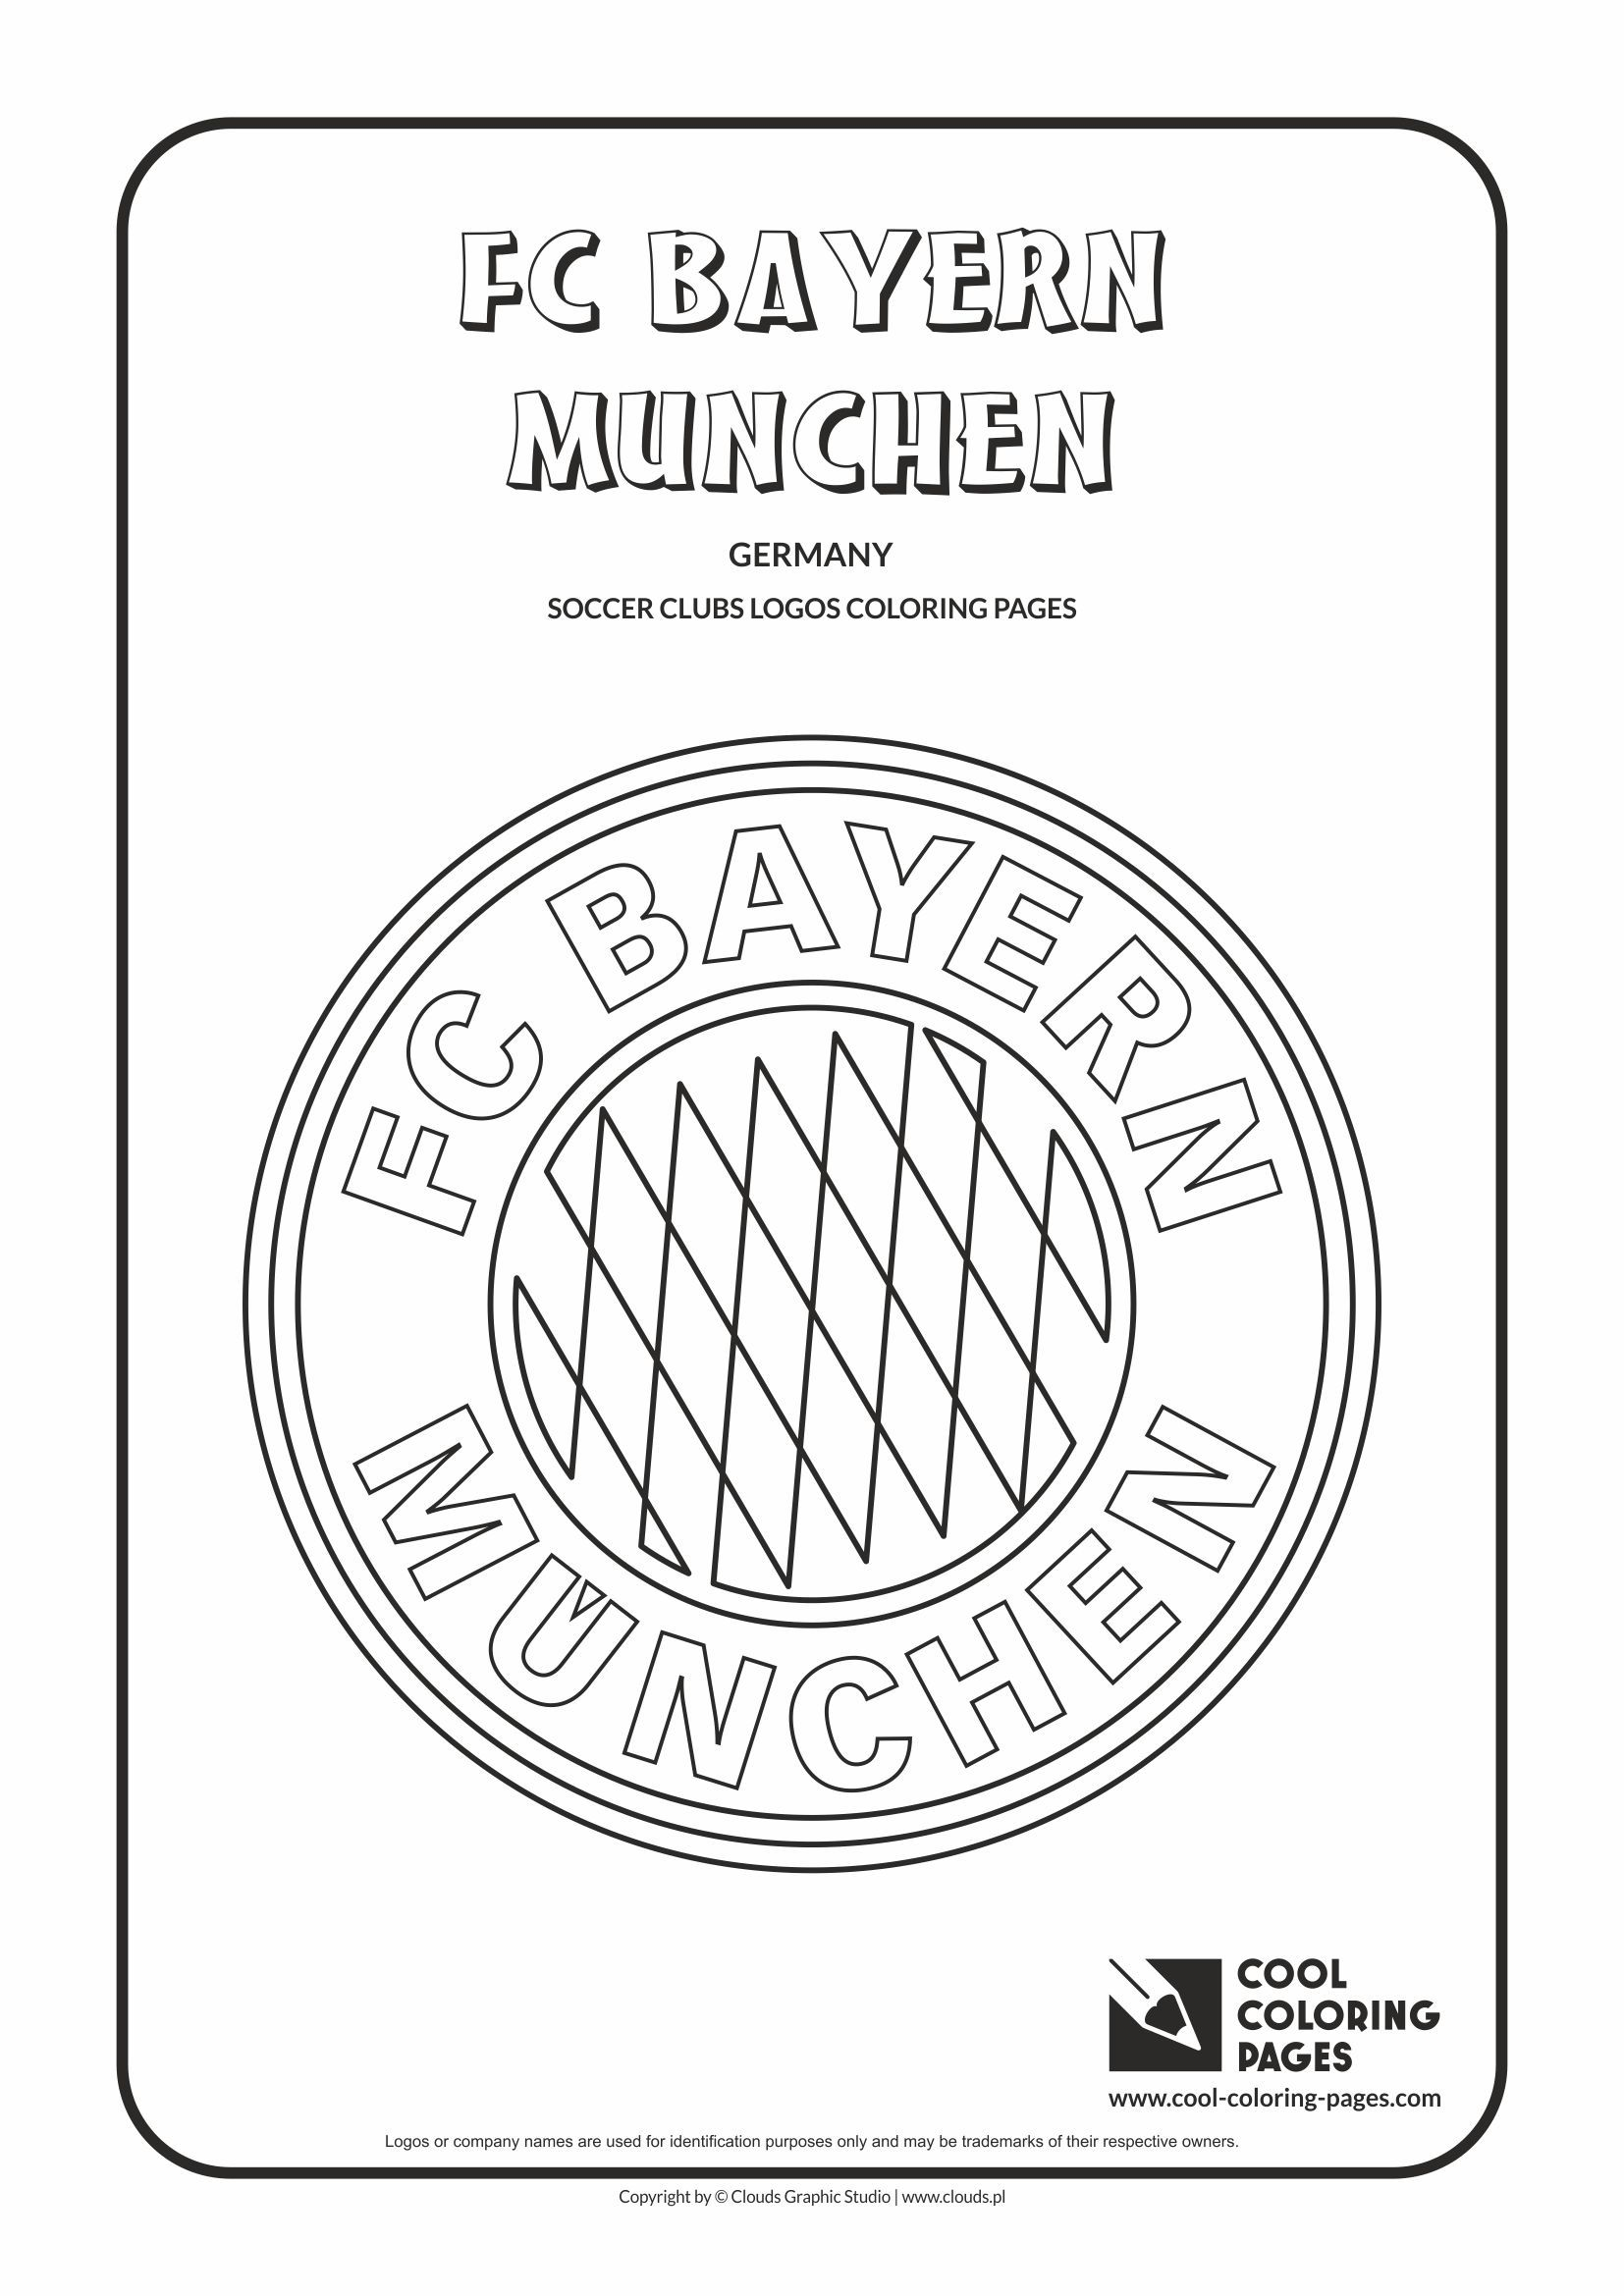 cool coloring pages soccer club logos fc bayern munchen logo coloring page with fc bayern. Black Bedroom Furniture Sets. Home Design Ideas